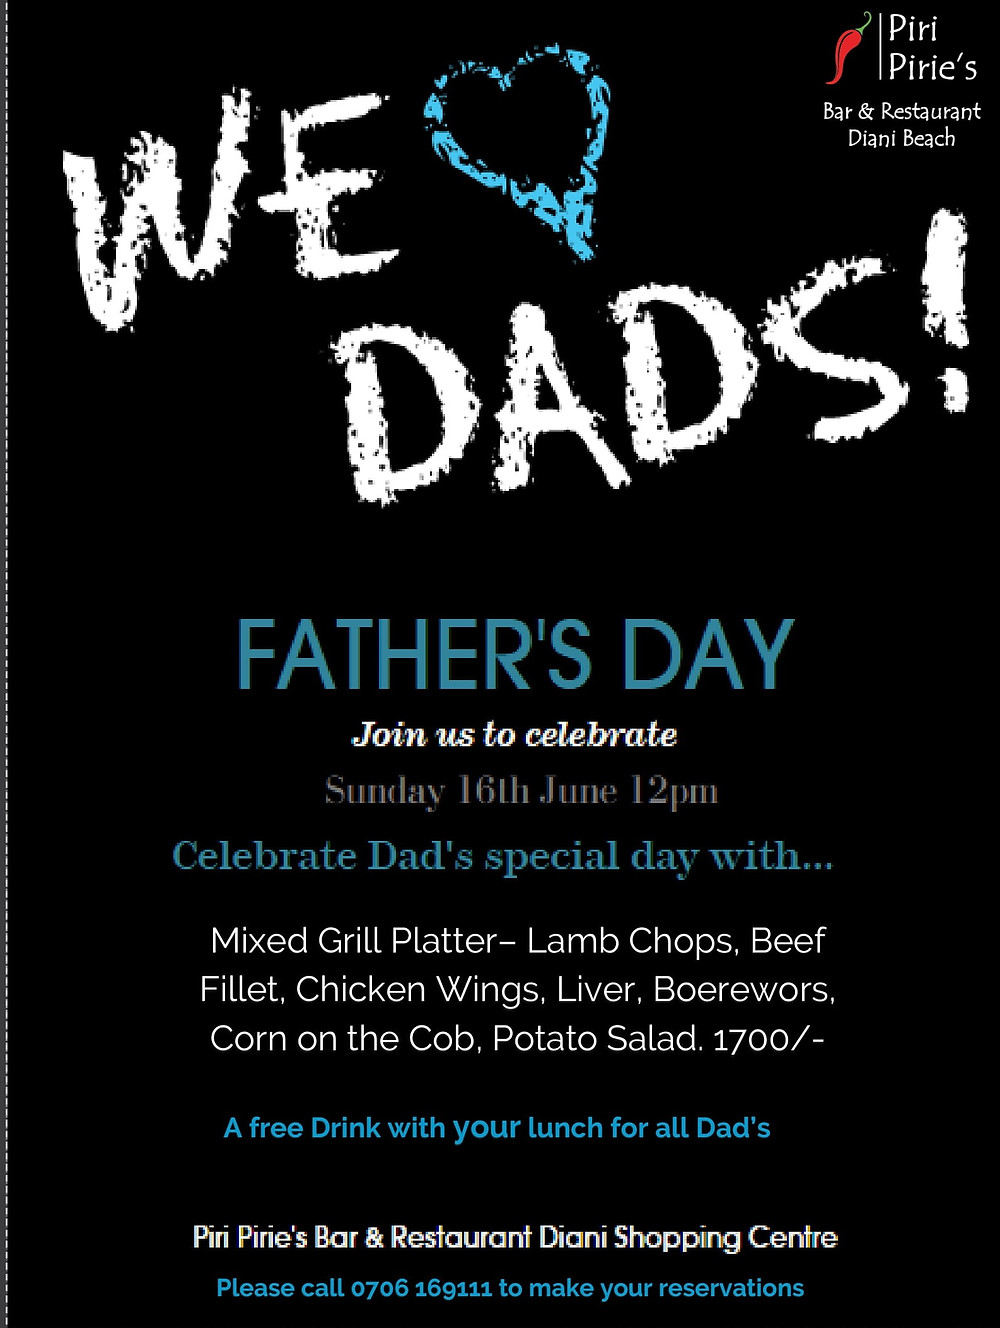 Fathers Day at Piri Pirie's Sunday 16th June